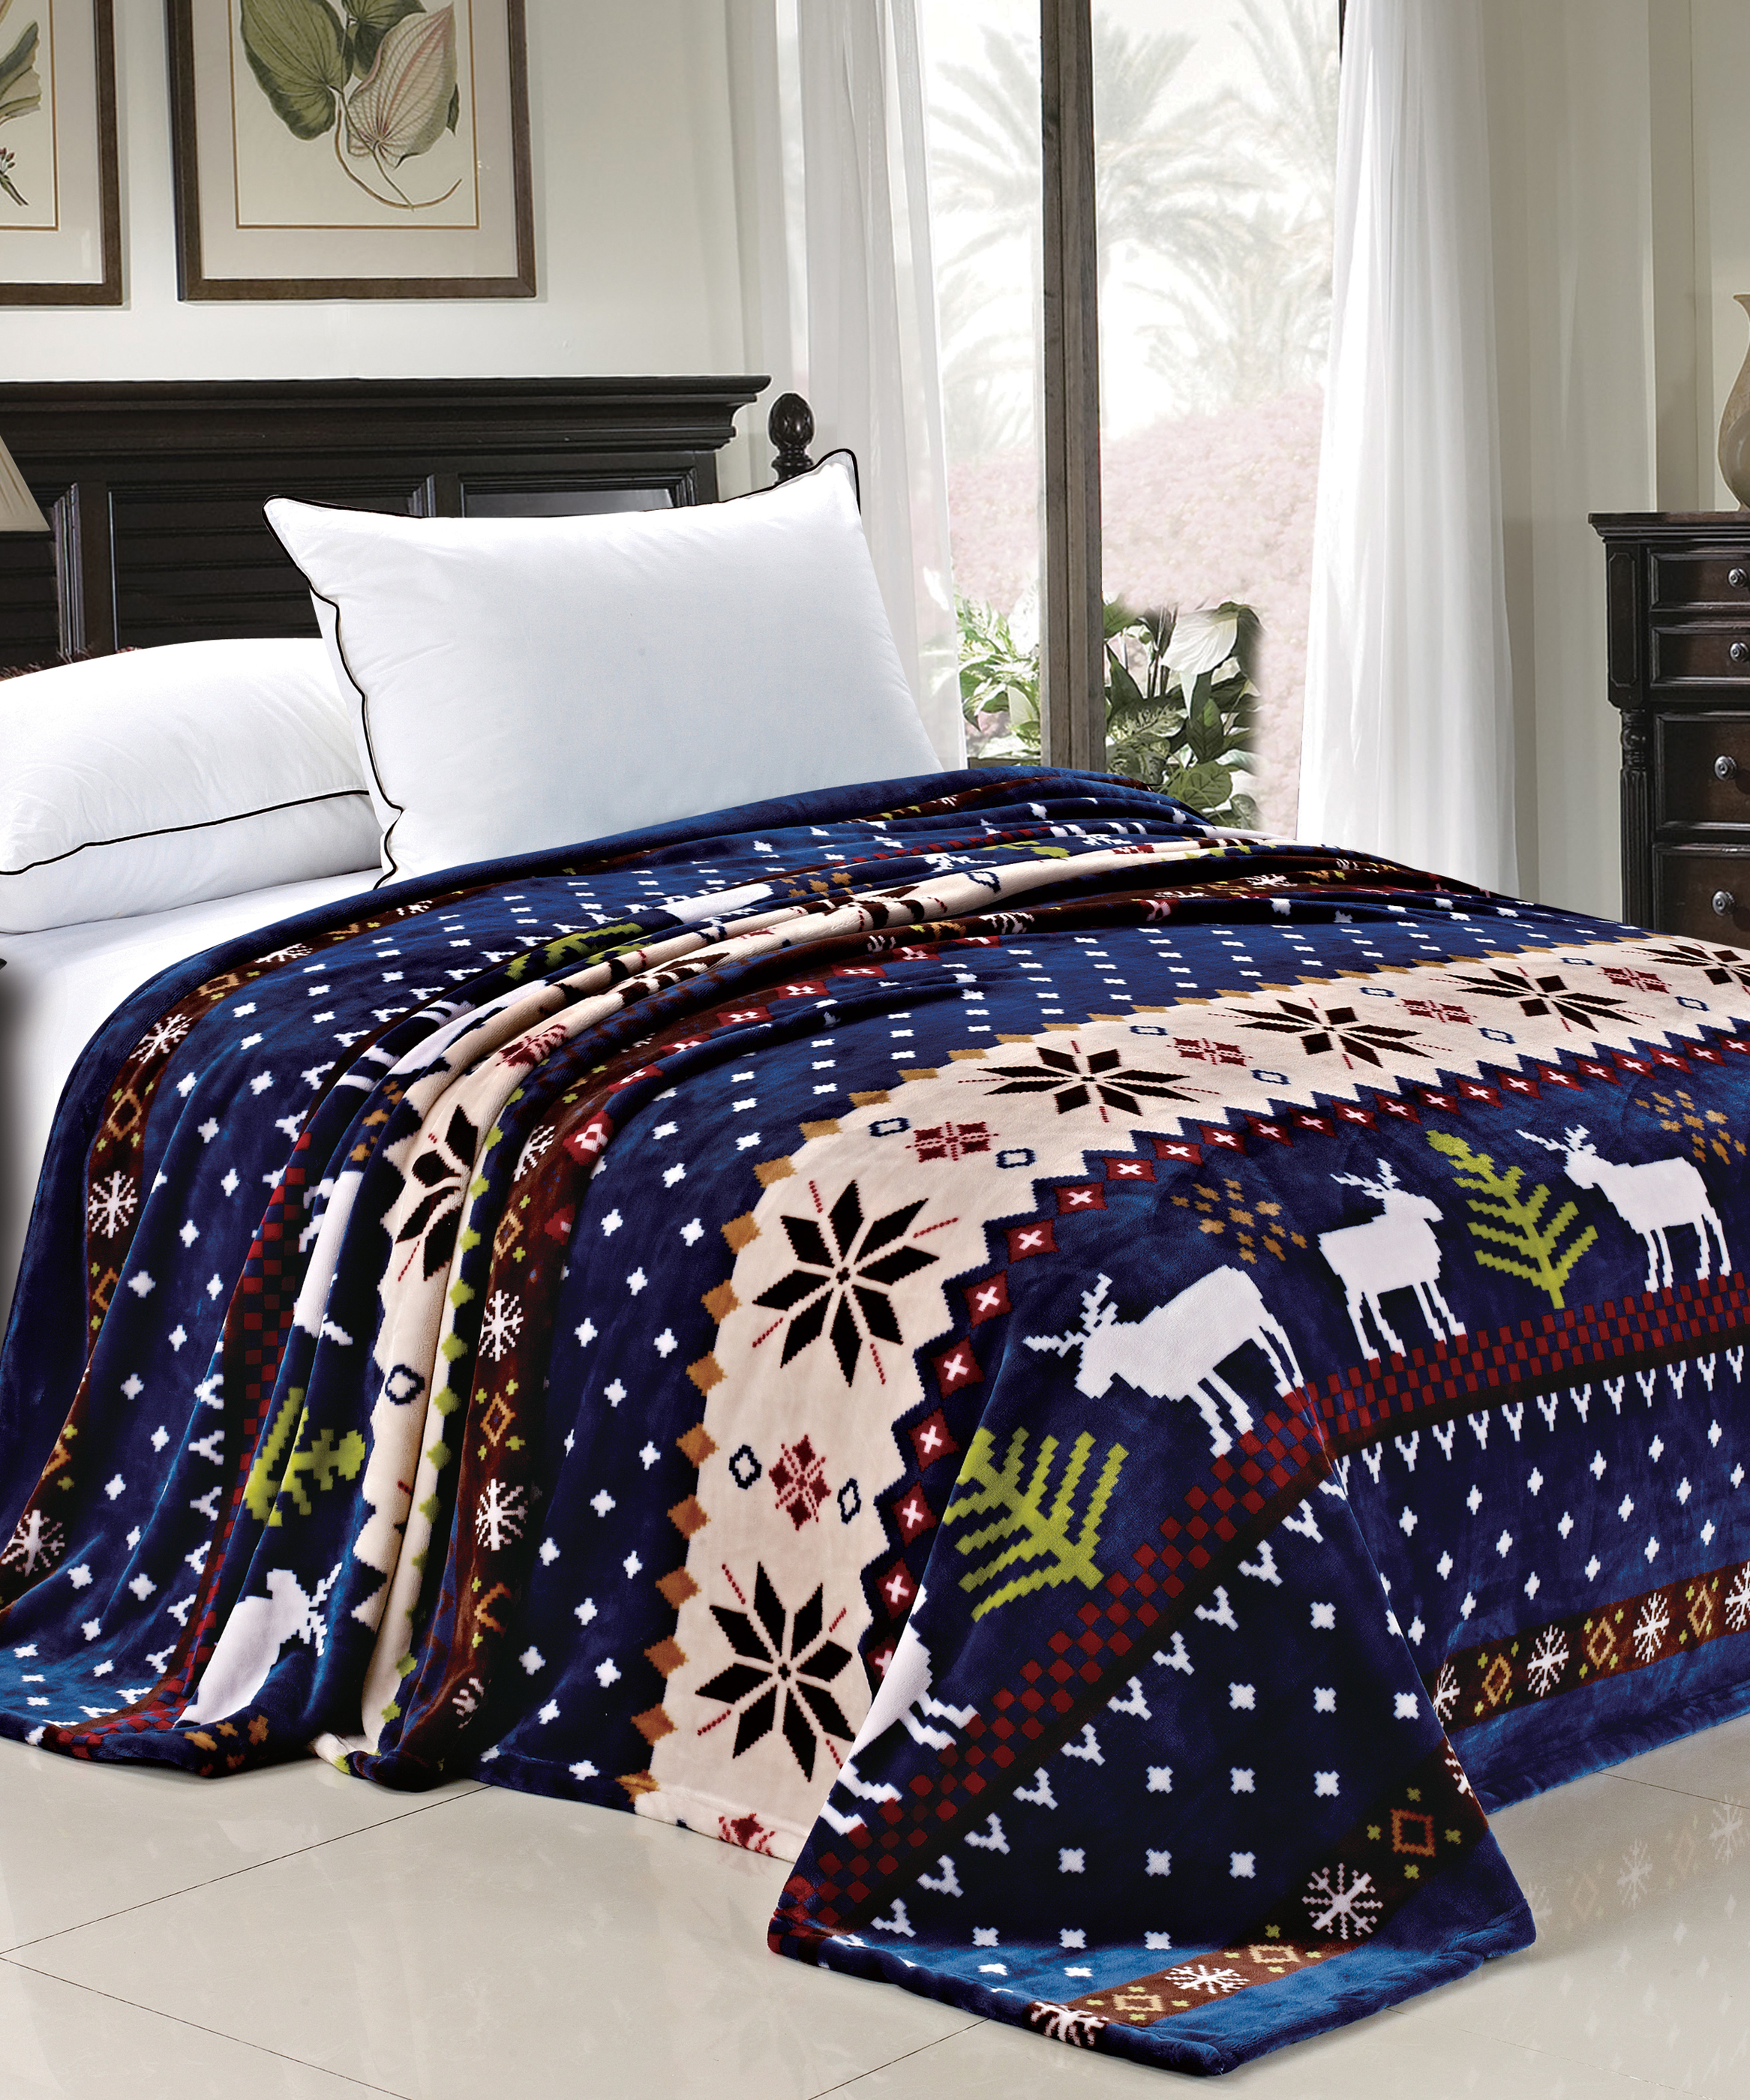 Christmas Blankets.Christmas Printed Flannel Fleece Blankets Bnf Home Inc